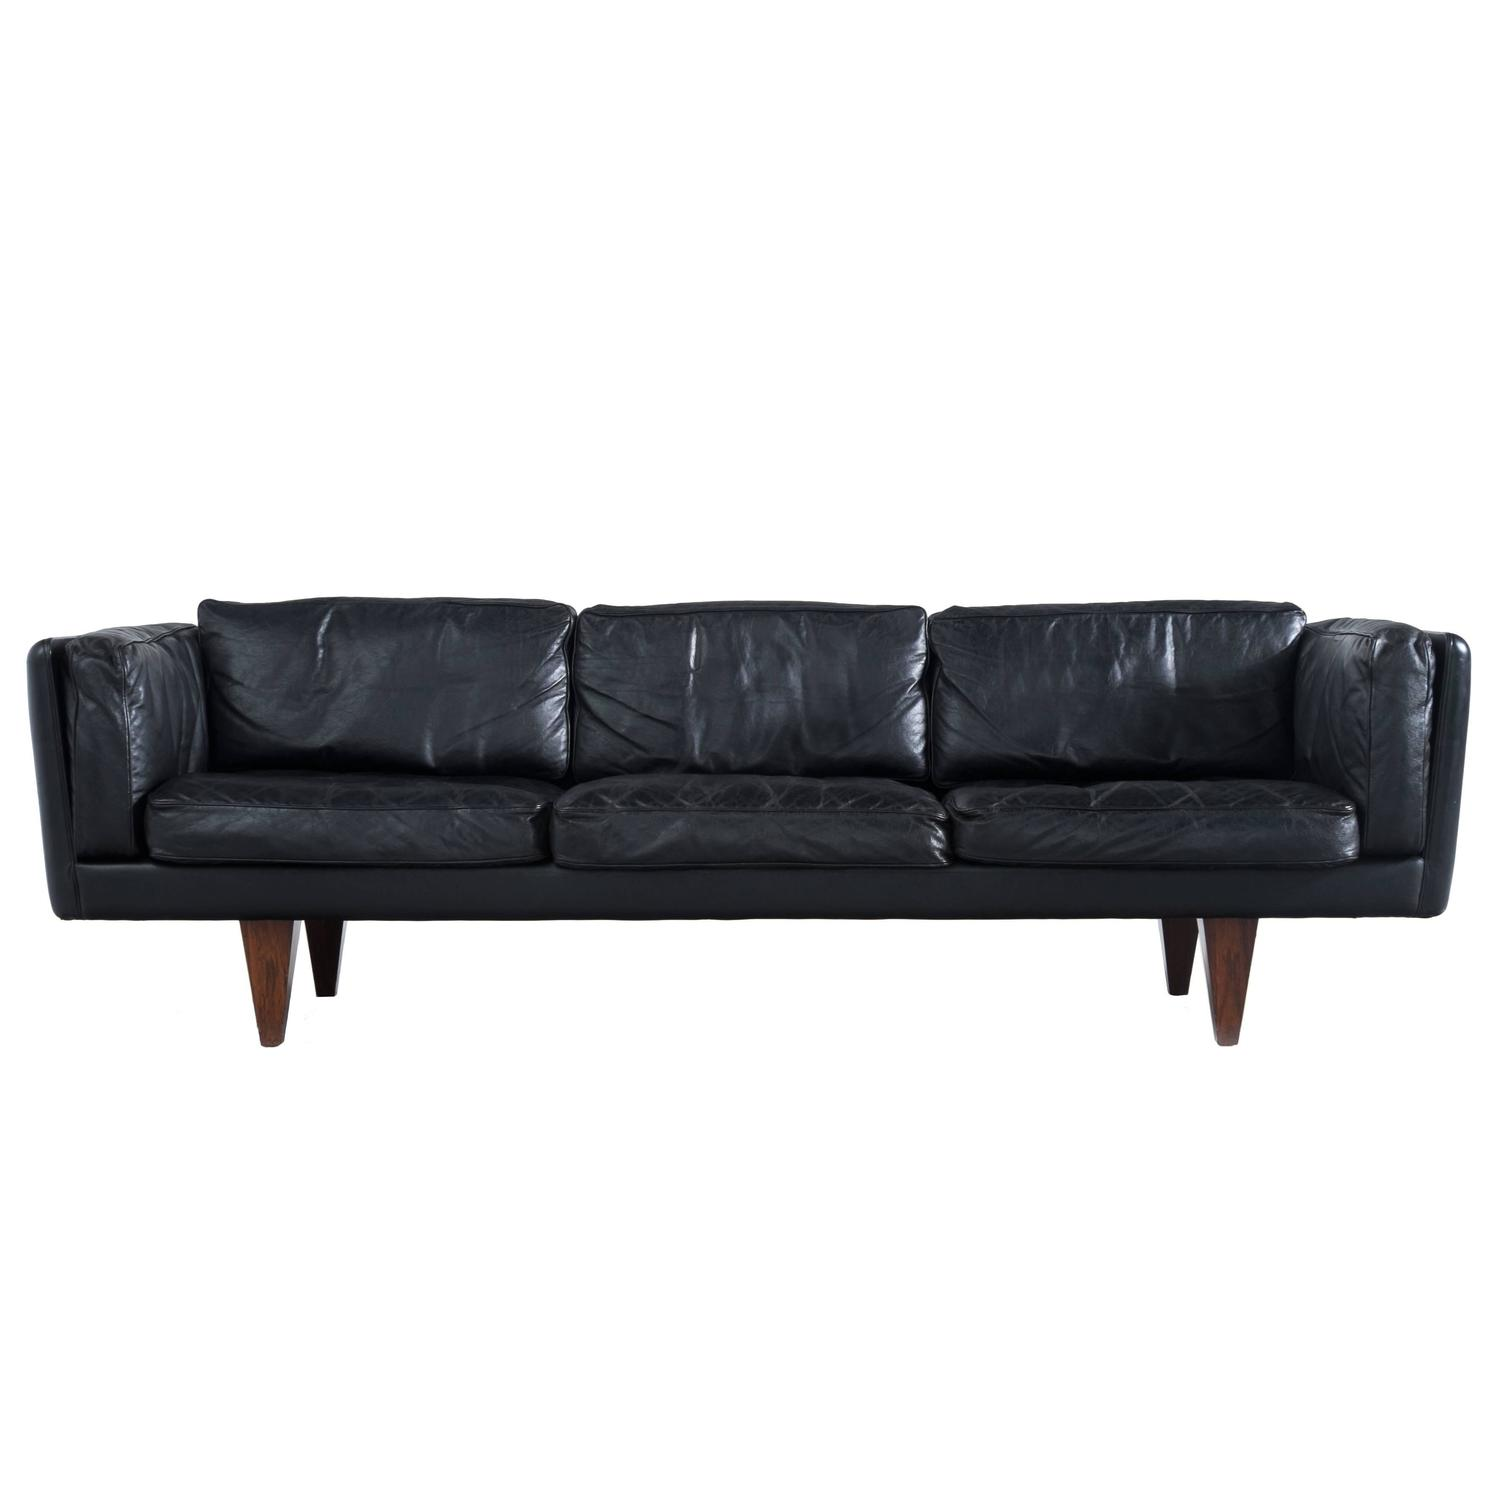 ThreeSeater Sofa in Black Leather by Illum Wikkelsø at 1stdibs